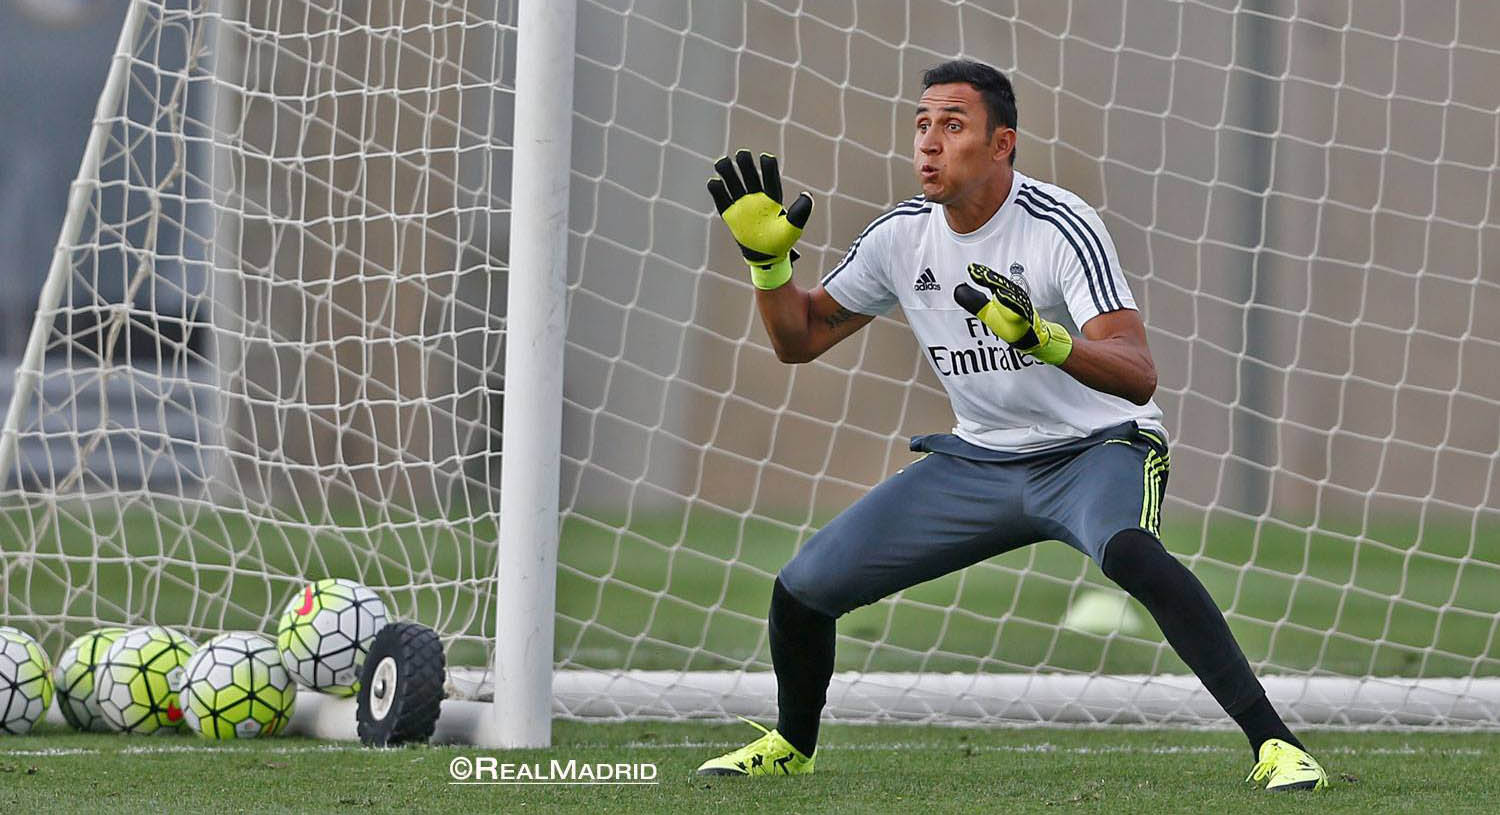 Keylor Navas Trains in Adidas X 15.1 Boots and Adidas Ace Goalkeeper Gloves